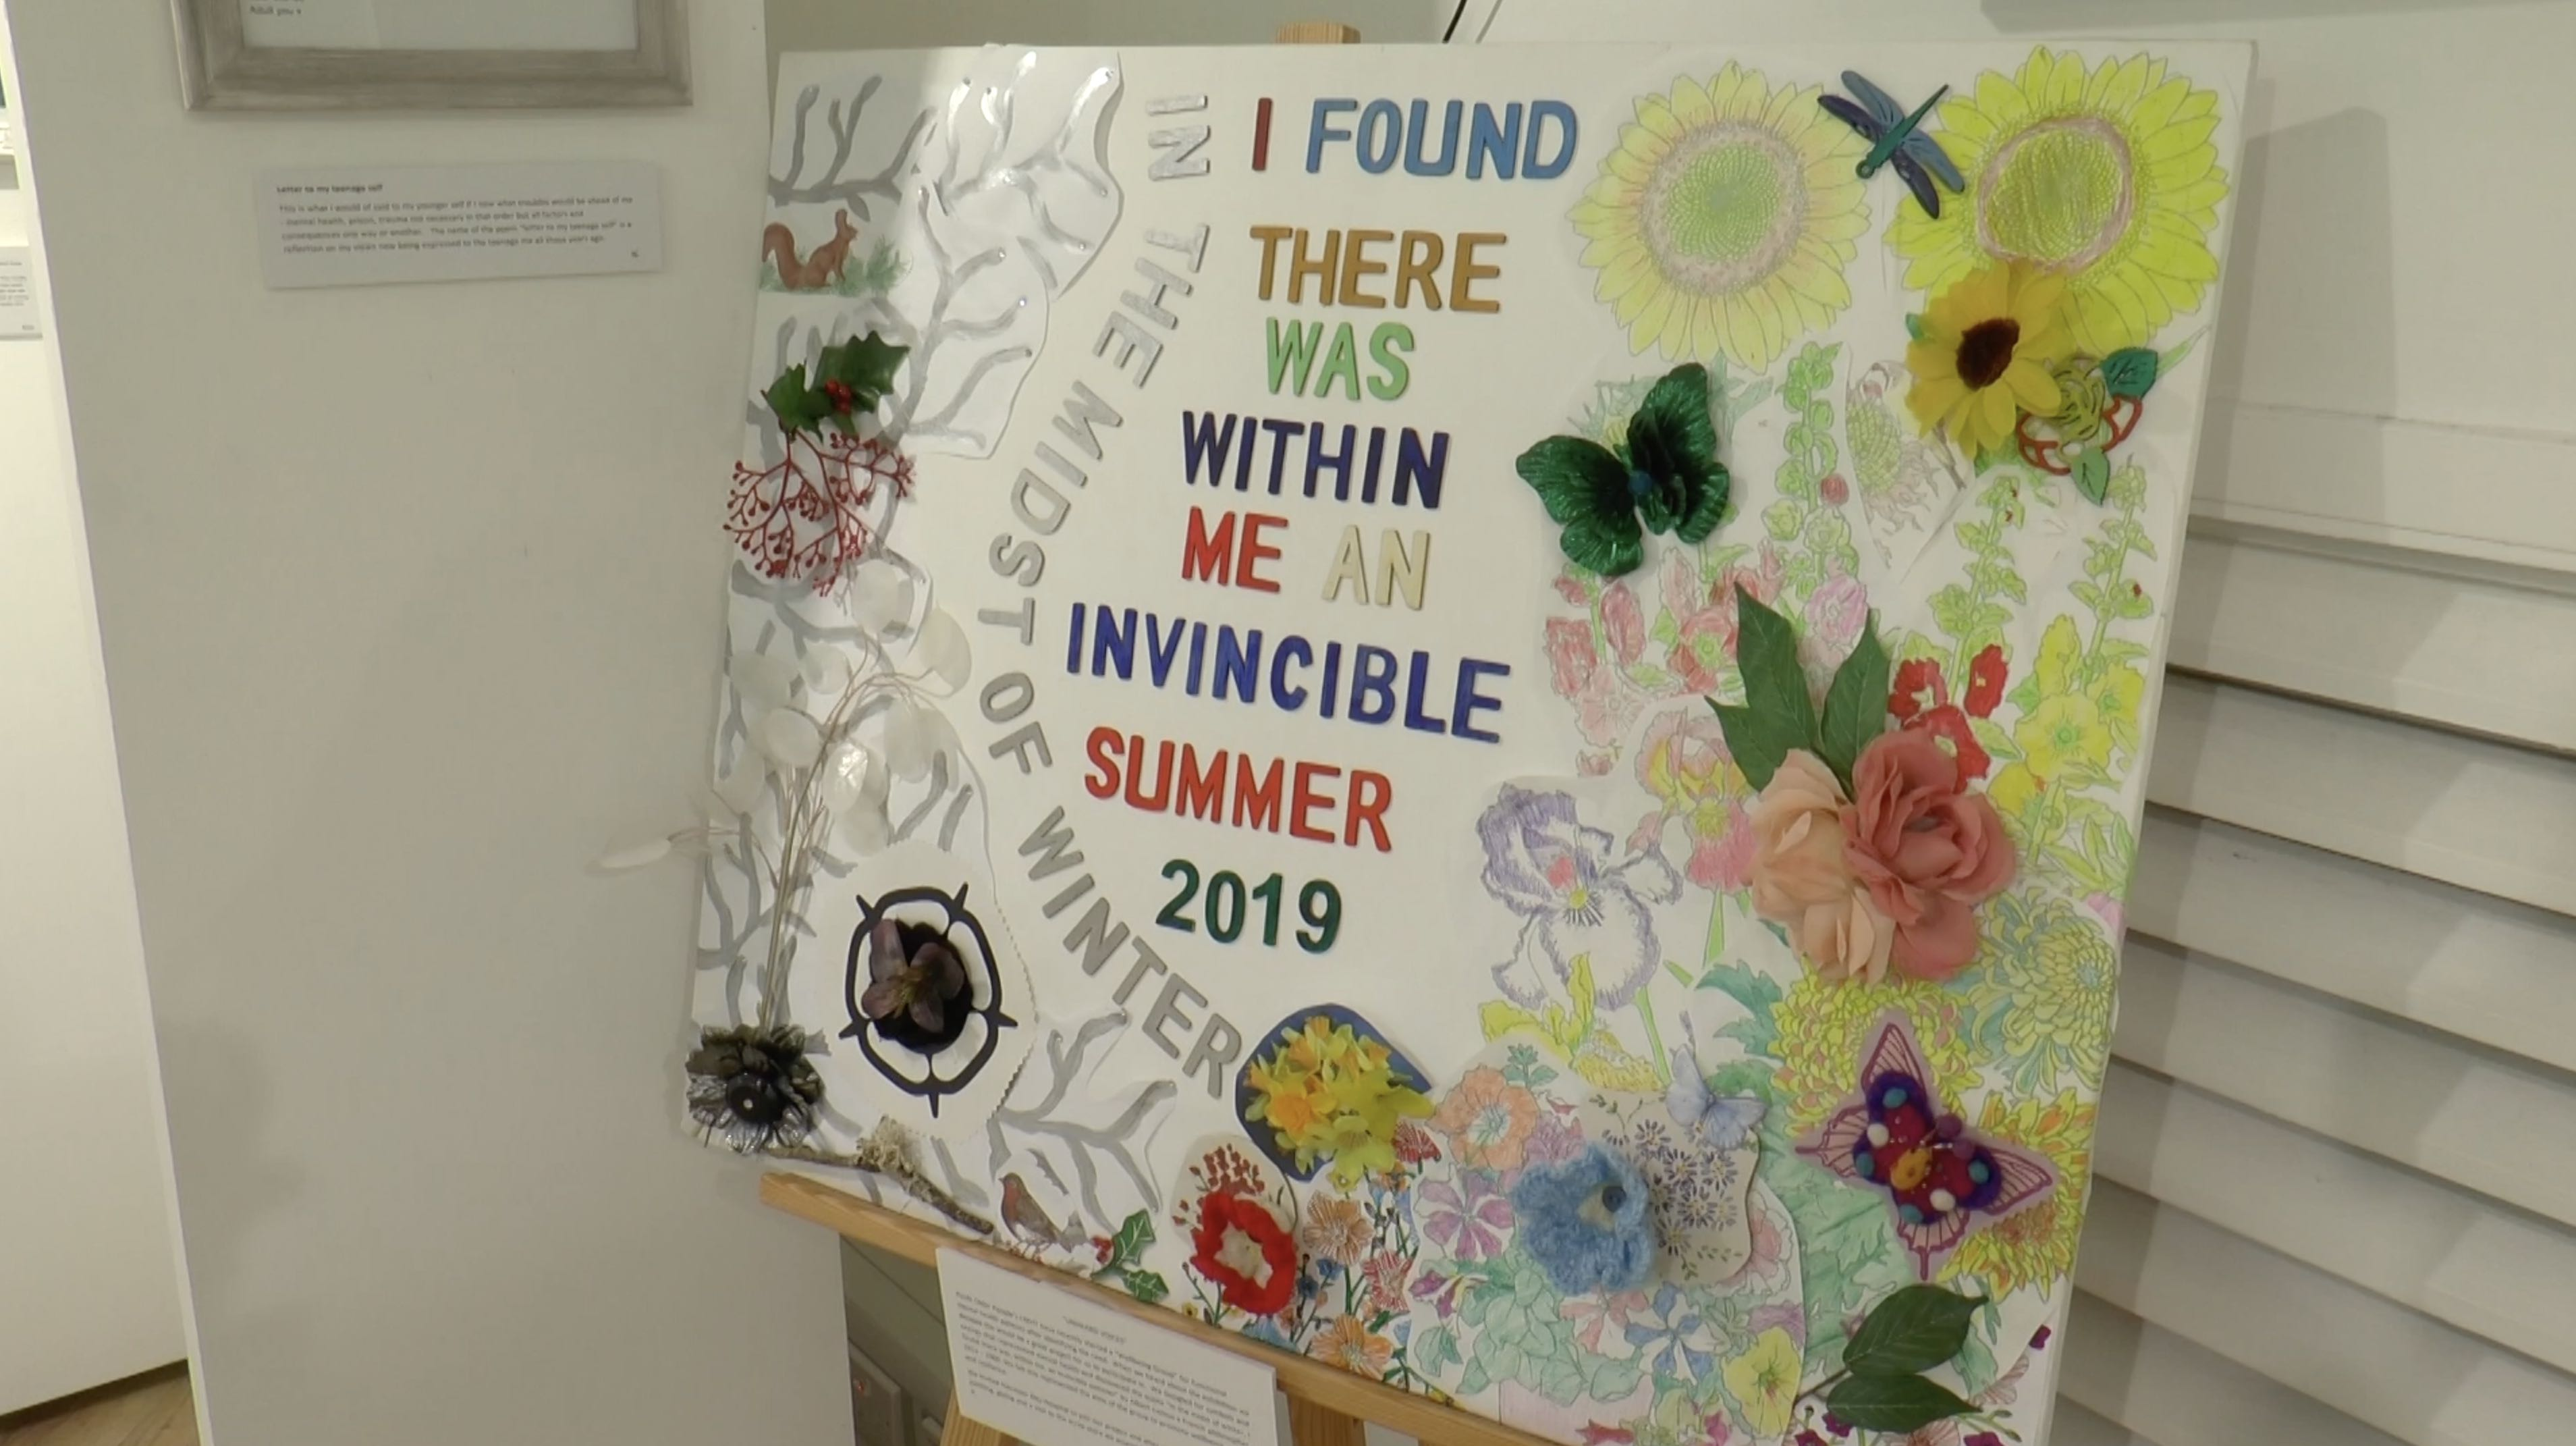 Patients express themselves through art